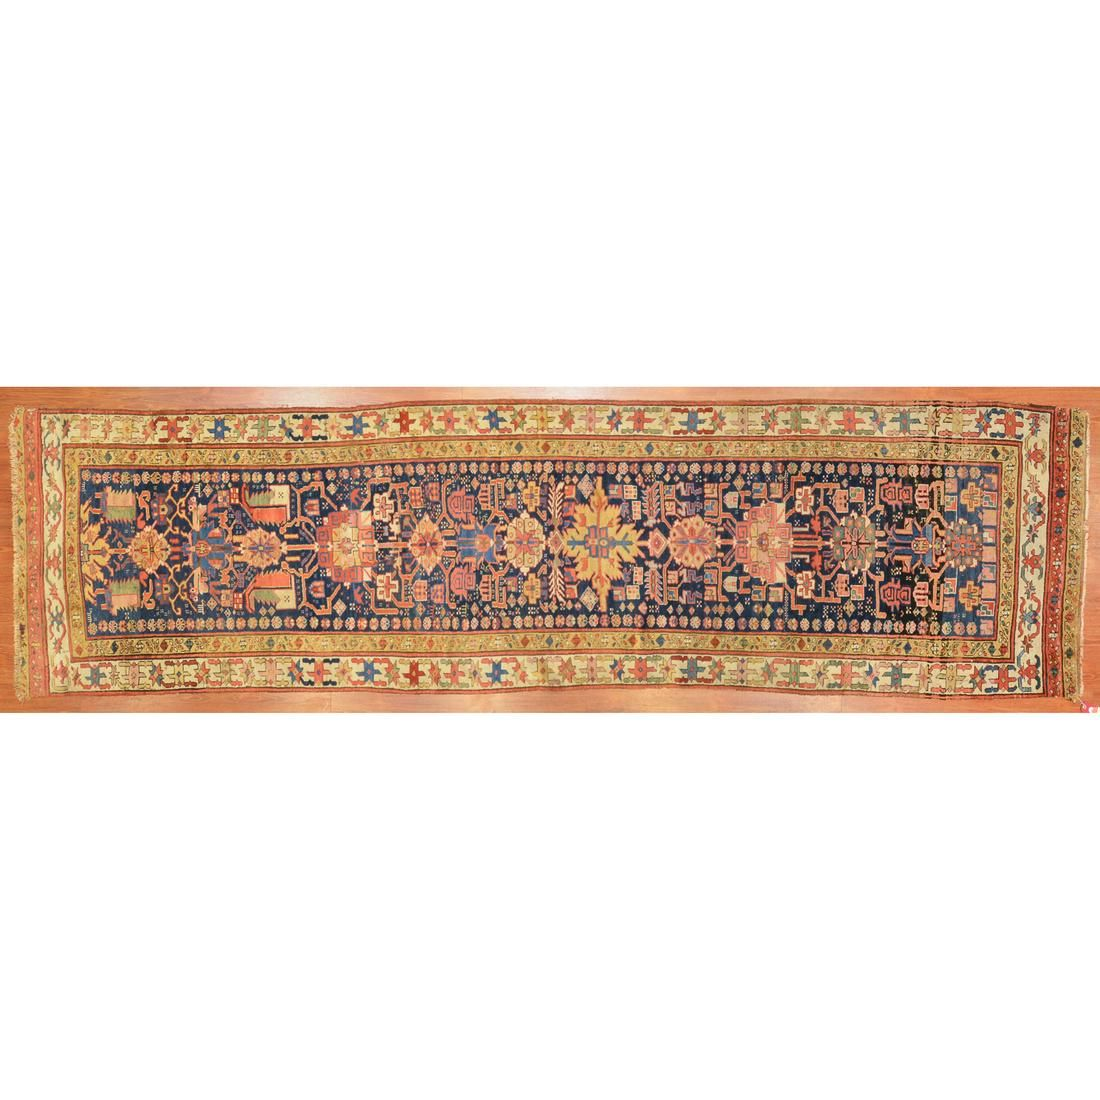 Semi-Antique Northwest Runner, Persia, 3.5 x 12.8